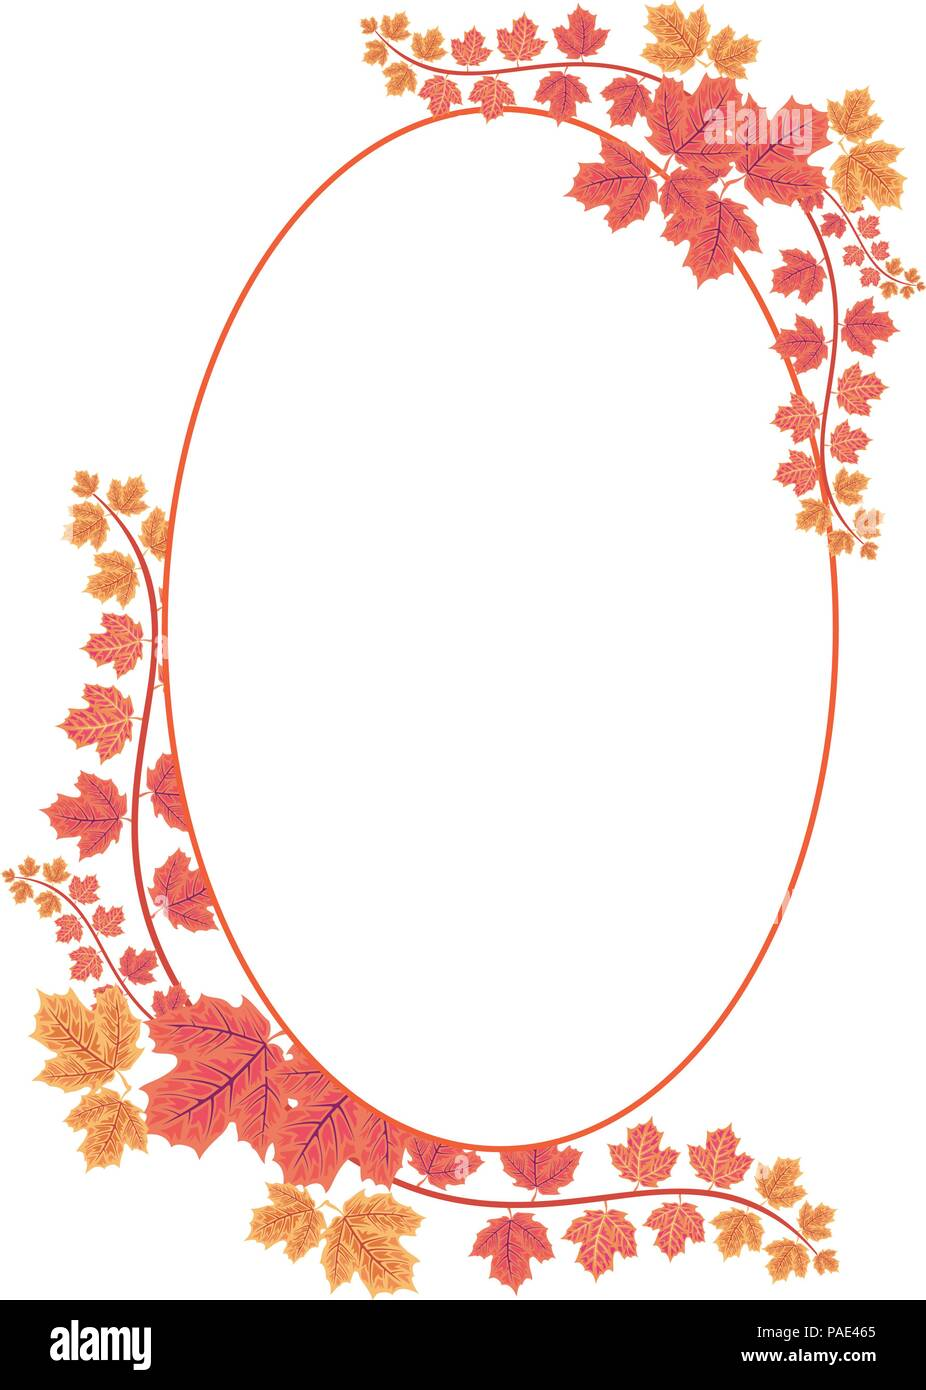 Oval Leaf Stockfotos & Oval Leaf Bilder - Seite 4 - Alamy